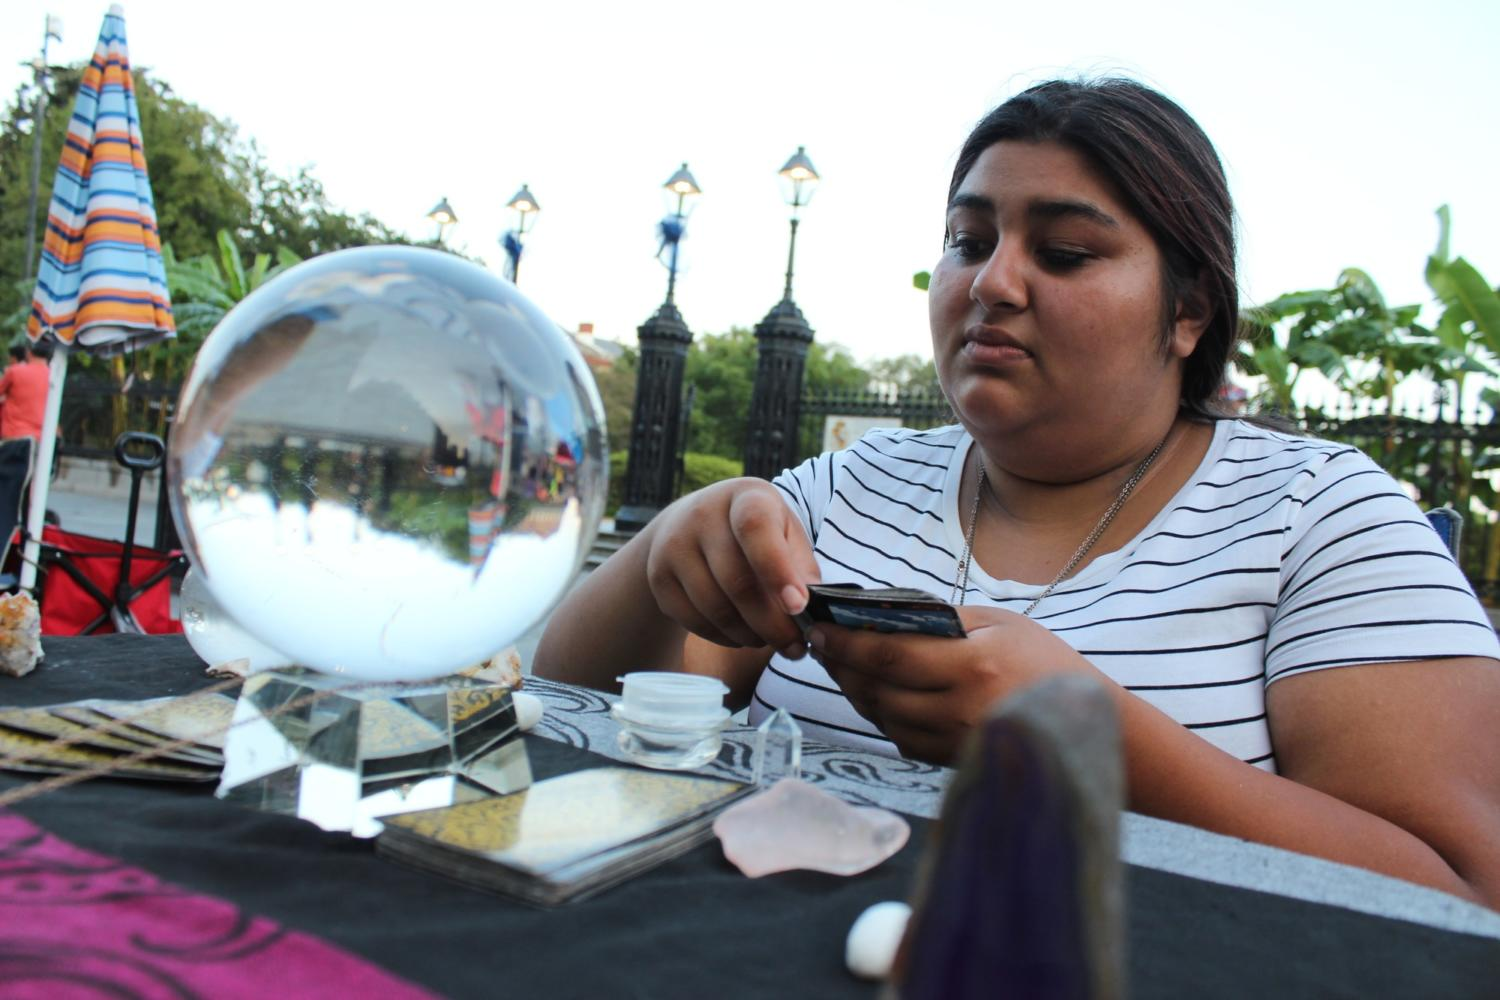 Fortune teller Miss Stephanie deals out tarot cards near her crystal ball Photo credit: Cristian Orellana